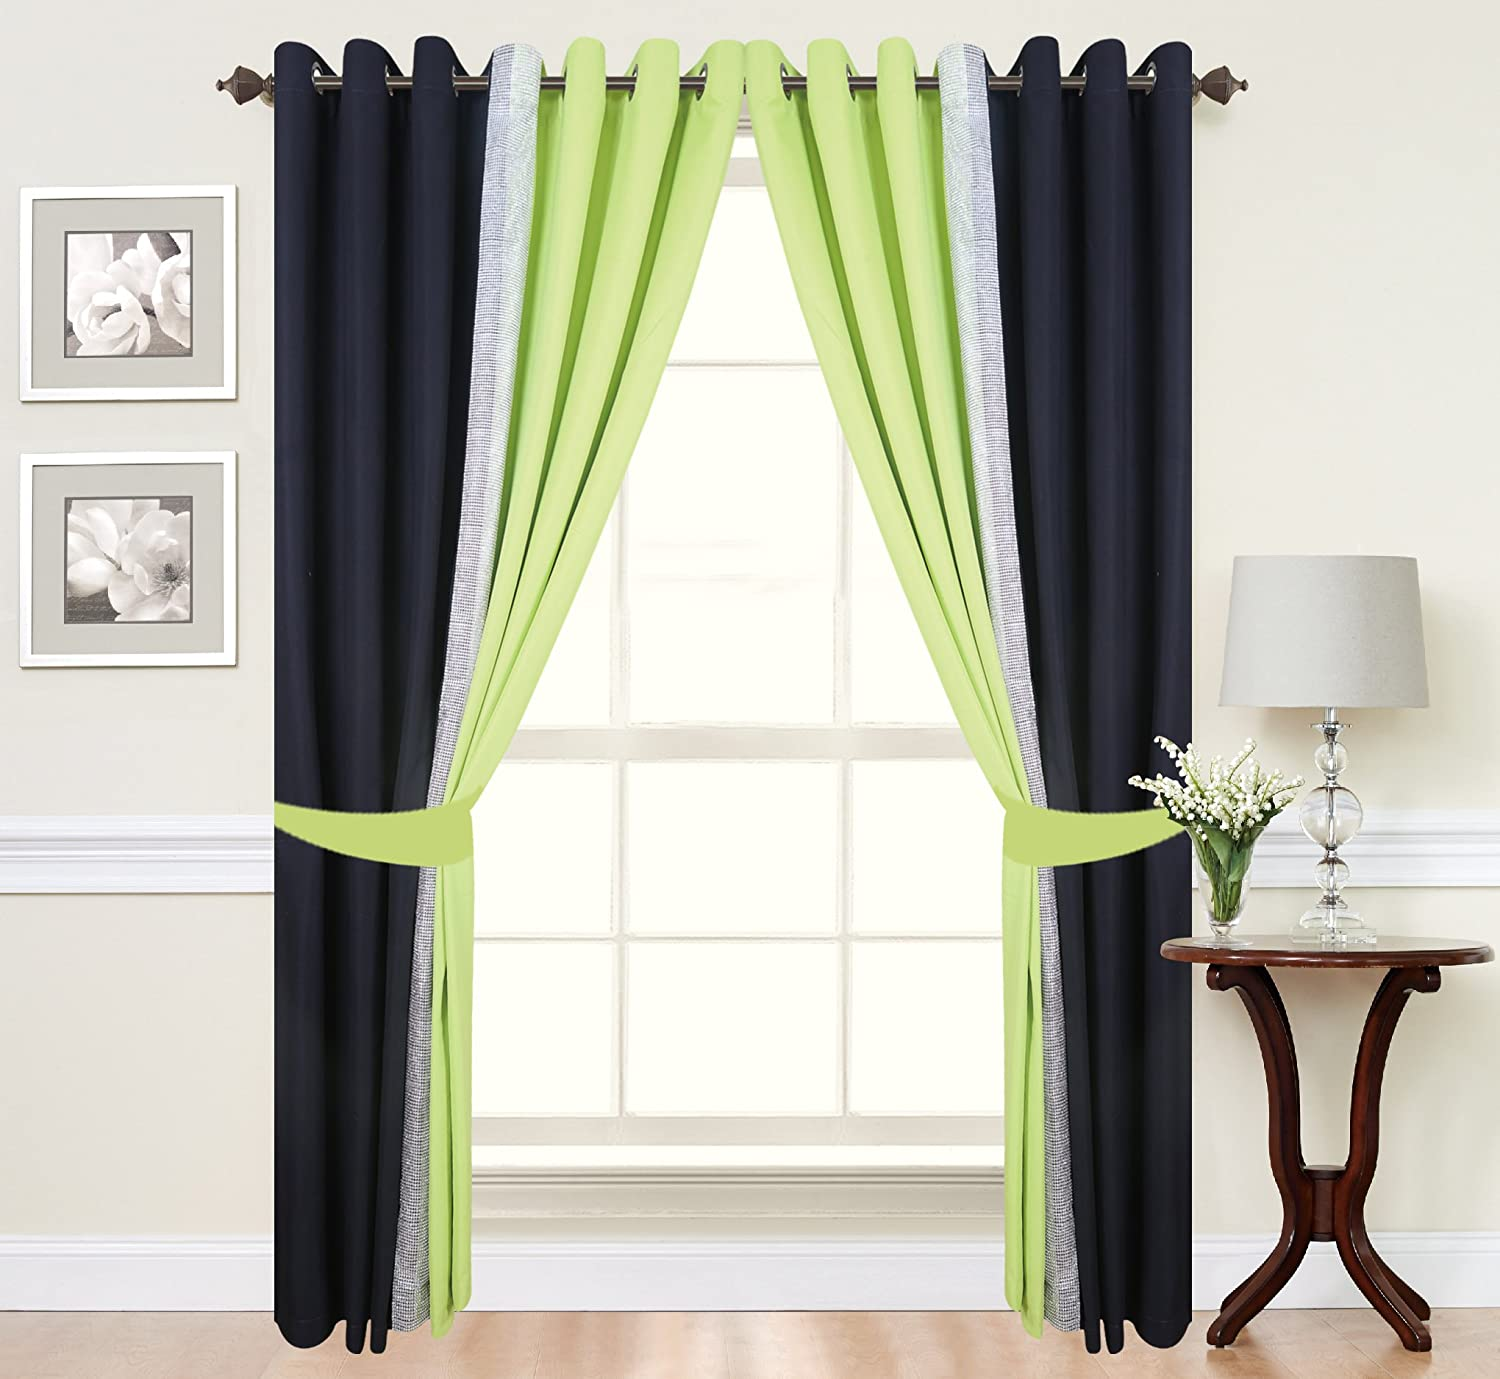 DIAMANTE PAIR OF 2 TONE FULLY LINED EYELET RINGTOP CURTAINS IN LIME GREEN/BLACK HEAVY DUTY 140GSM (66